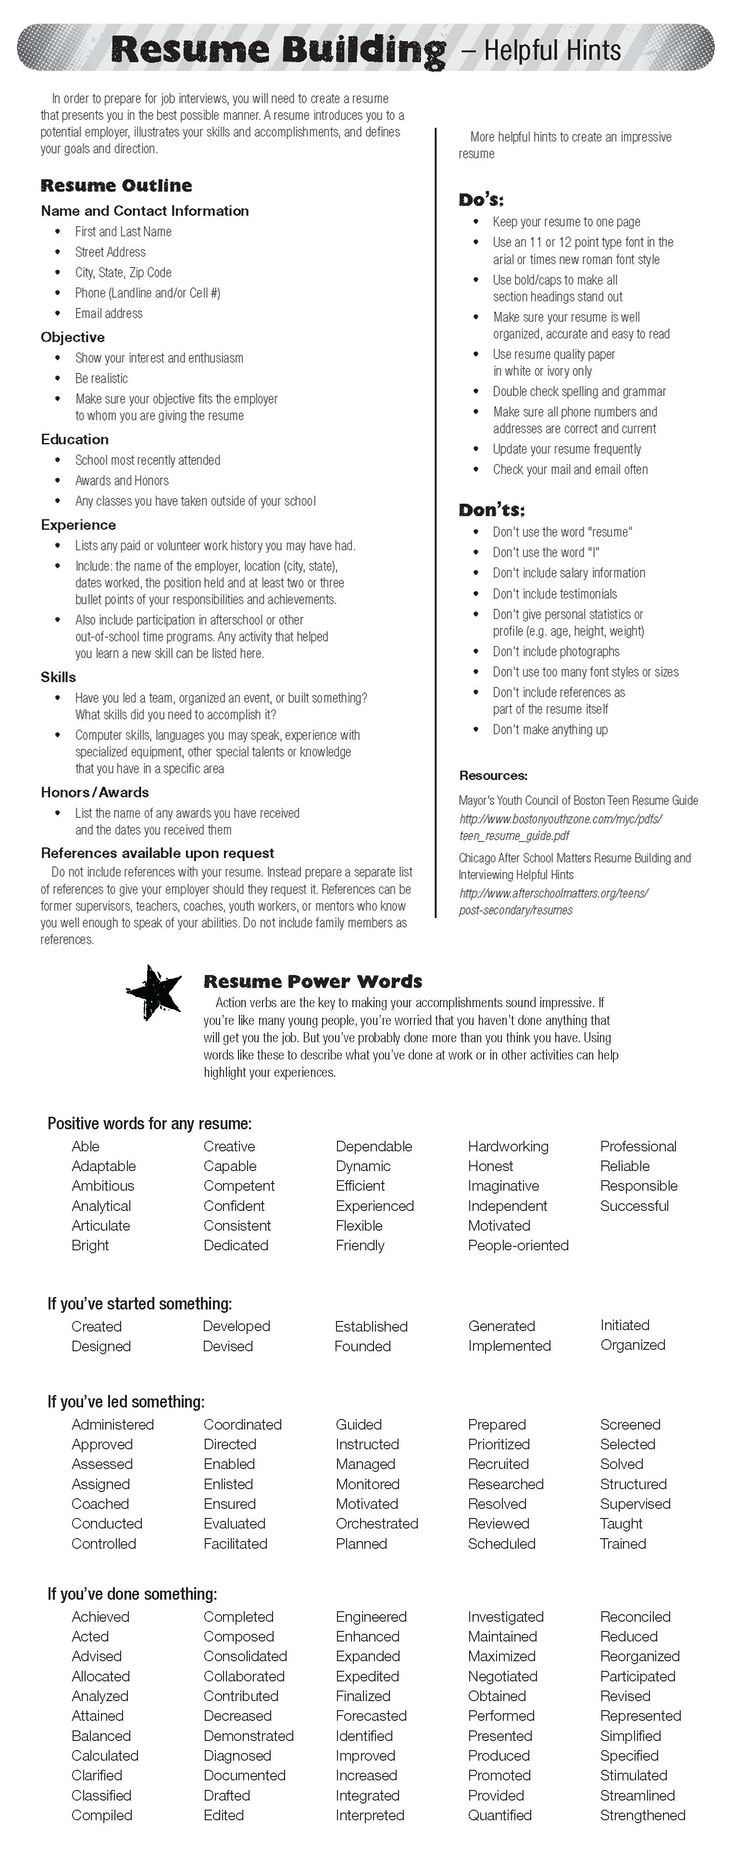 Opposenewapstandardsus  Mesmerizing  Ideas About Resume On Pinterest  Cv Format Resume Cv And  With Fair  Ideas About Resume On Pinterest  Cv Format Resume Cv And Resume Templates With Delectable Resume References Examples Also Personal Statement Resume In Addition Soccer Coach Resume And Post Resume On Linkedin As Well As Cashier Duties For Resume Additionally Tech Support Resume From Pinterestcom With Opposenewapstandardsus  Fair  Ideas About Resume On Pinterest  Cv Format Resume Cv And  With Delectable  Ideas About Resume On Pinterest  Cv Format Resume Cv And Resume Templates And Mesmerizing Resume References Examples Also Personal Statement Resume In Addition Soccer Coach Resume From Pinterestcom